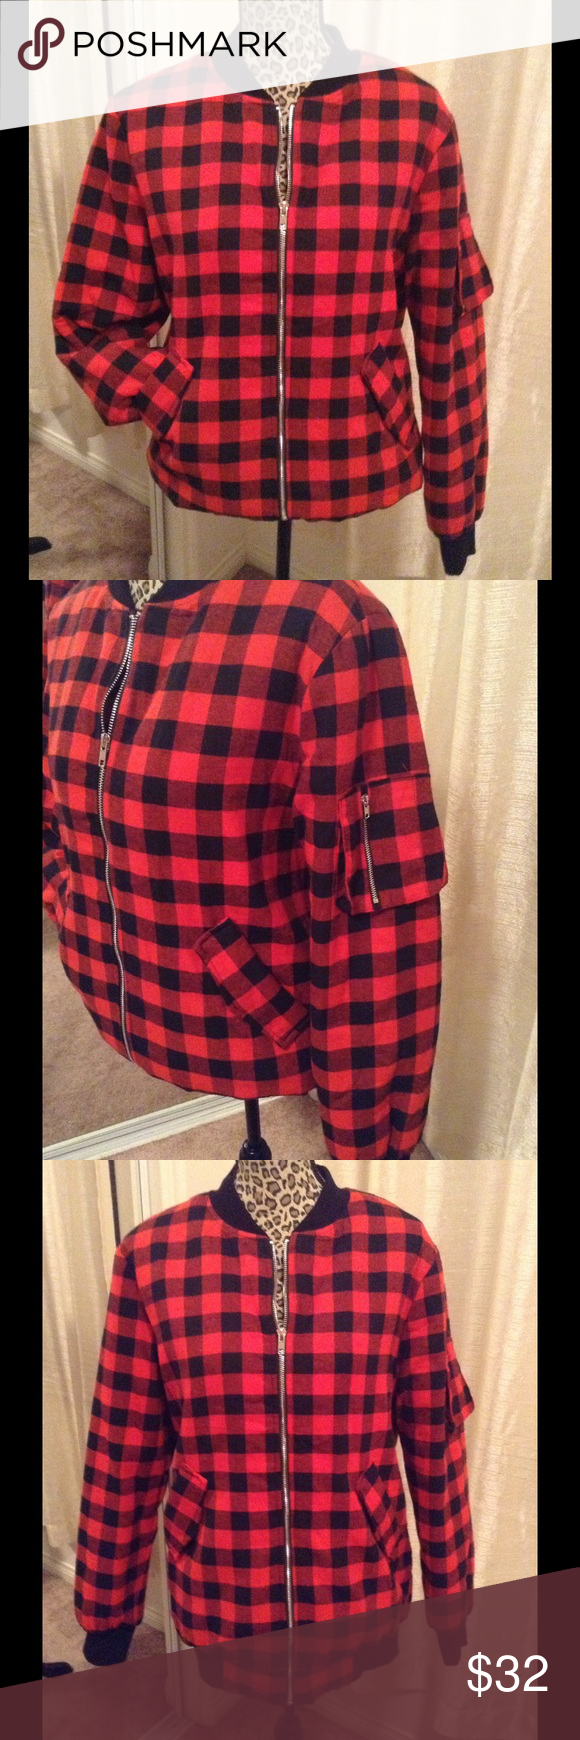 PlaidFlannel Bomber Jacket Nwt Sz medium very warm Jackets